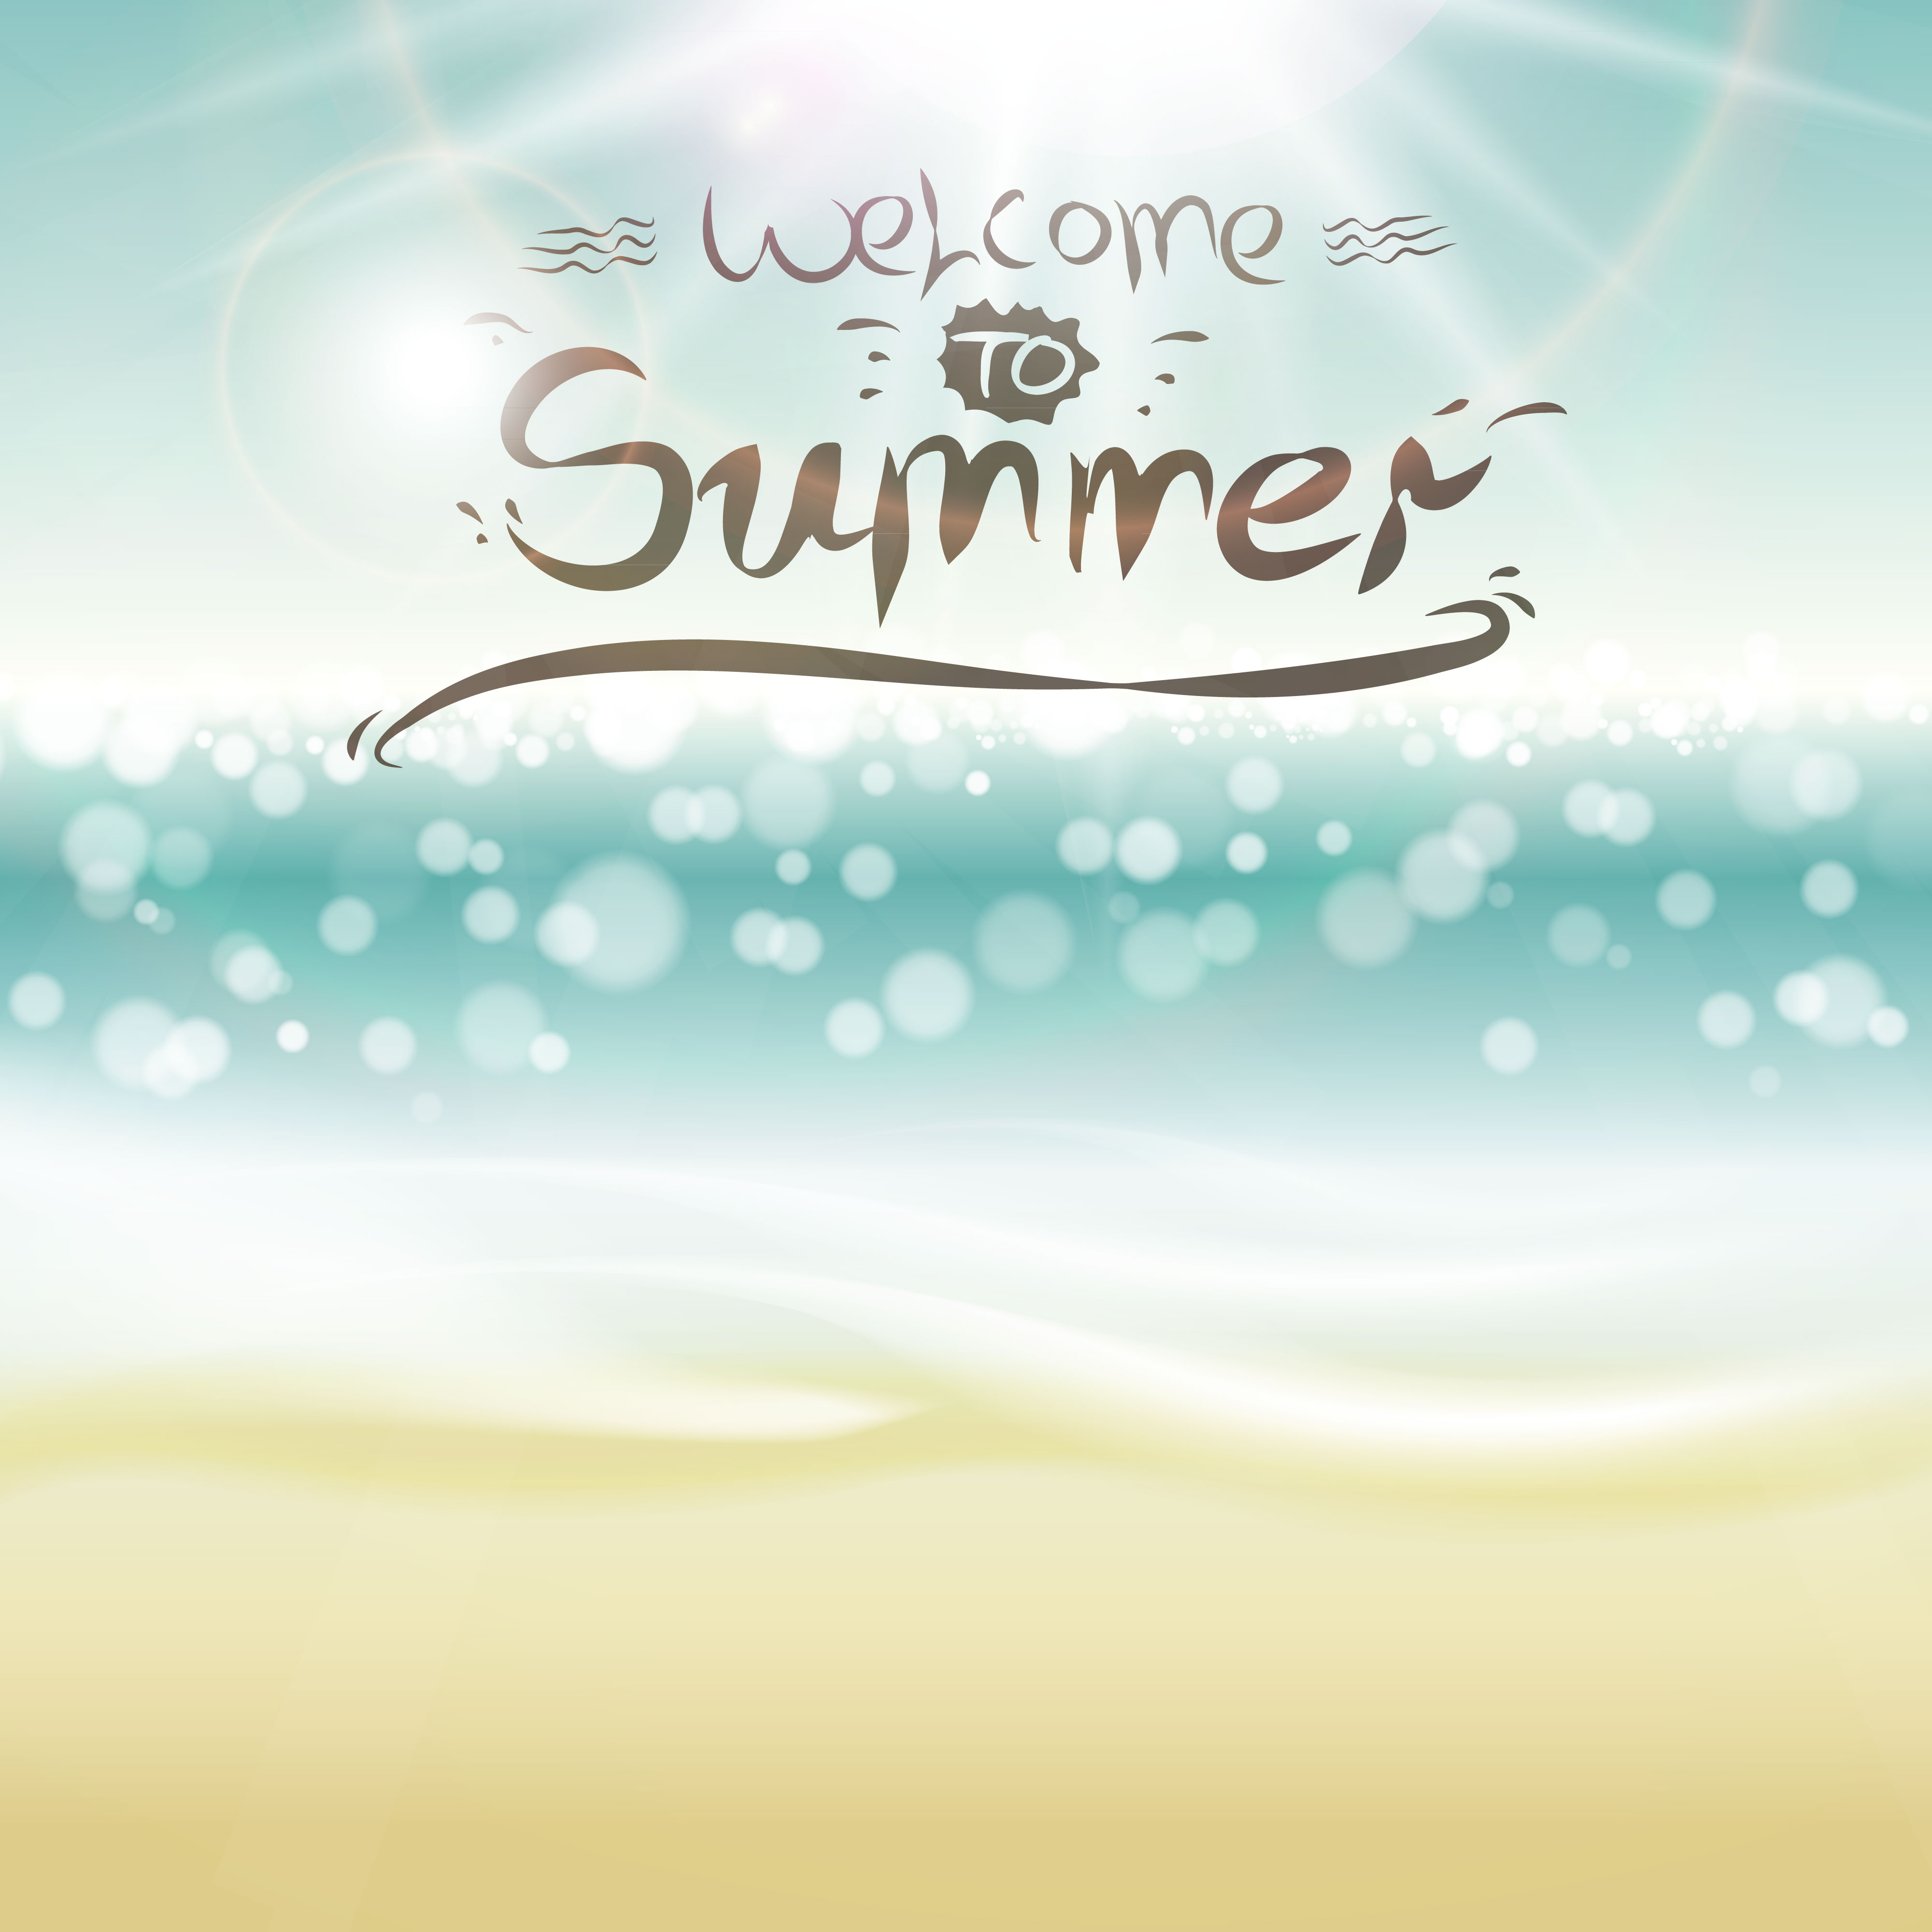 4000x4000 Summer Backgrounds With Light Vector Dot 01 Free Download